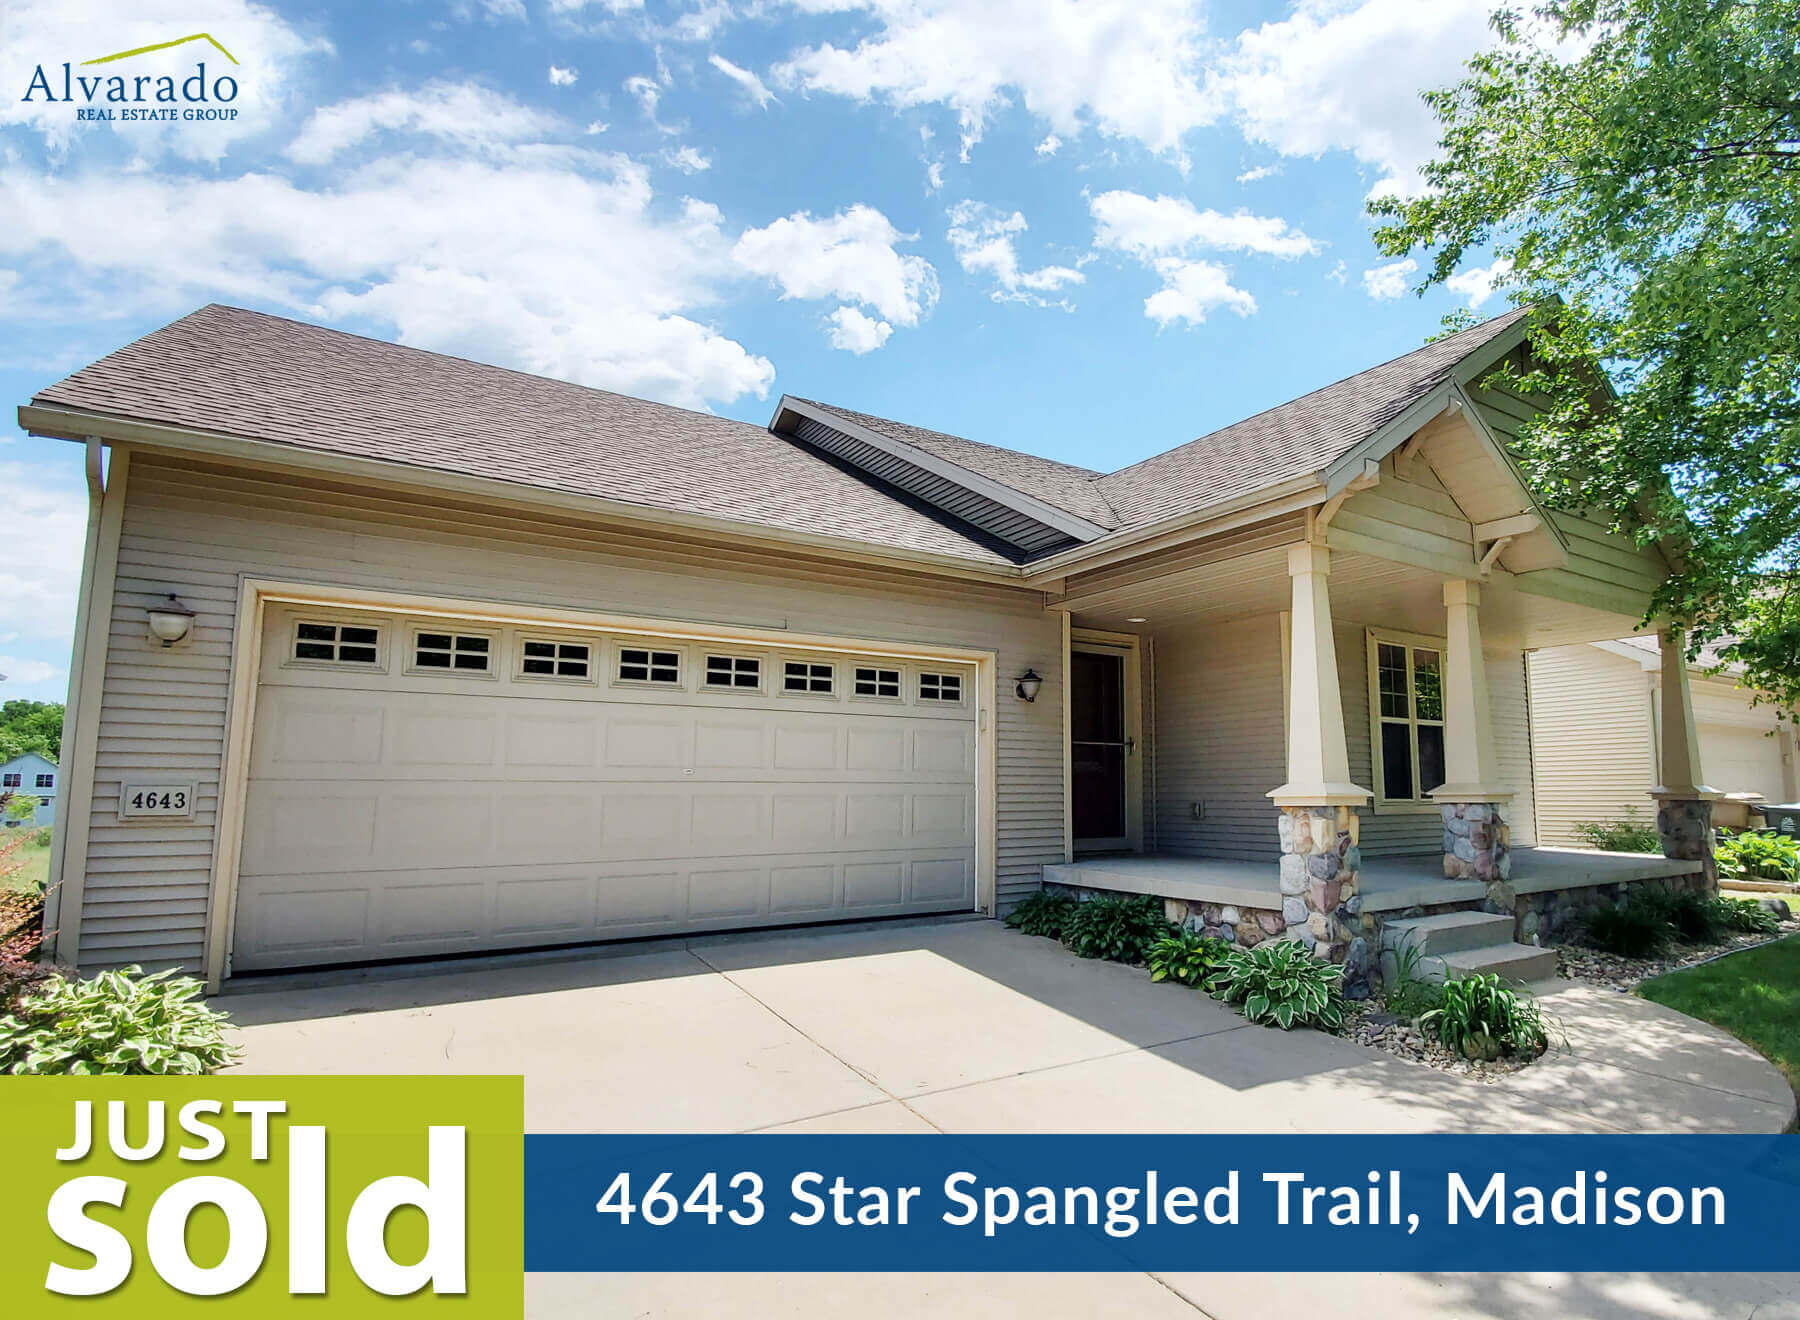 4643 Star Spangled Trail, Madison – Sold by Alvarado Real Estate Group